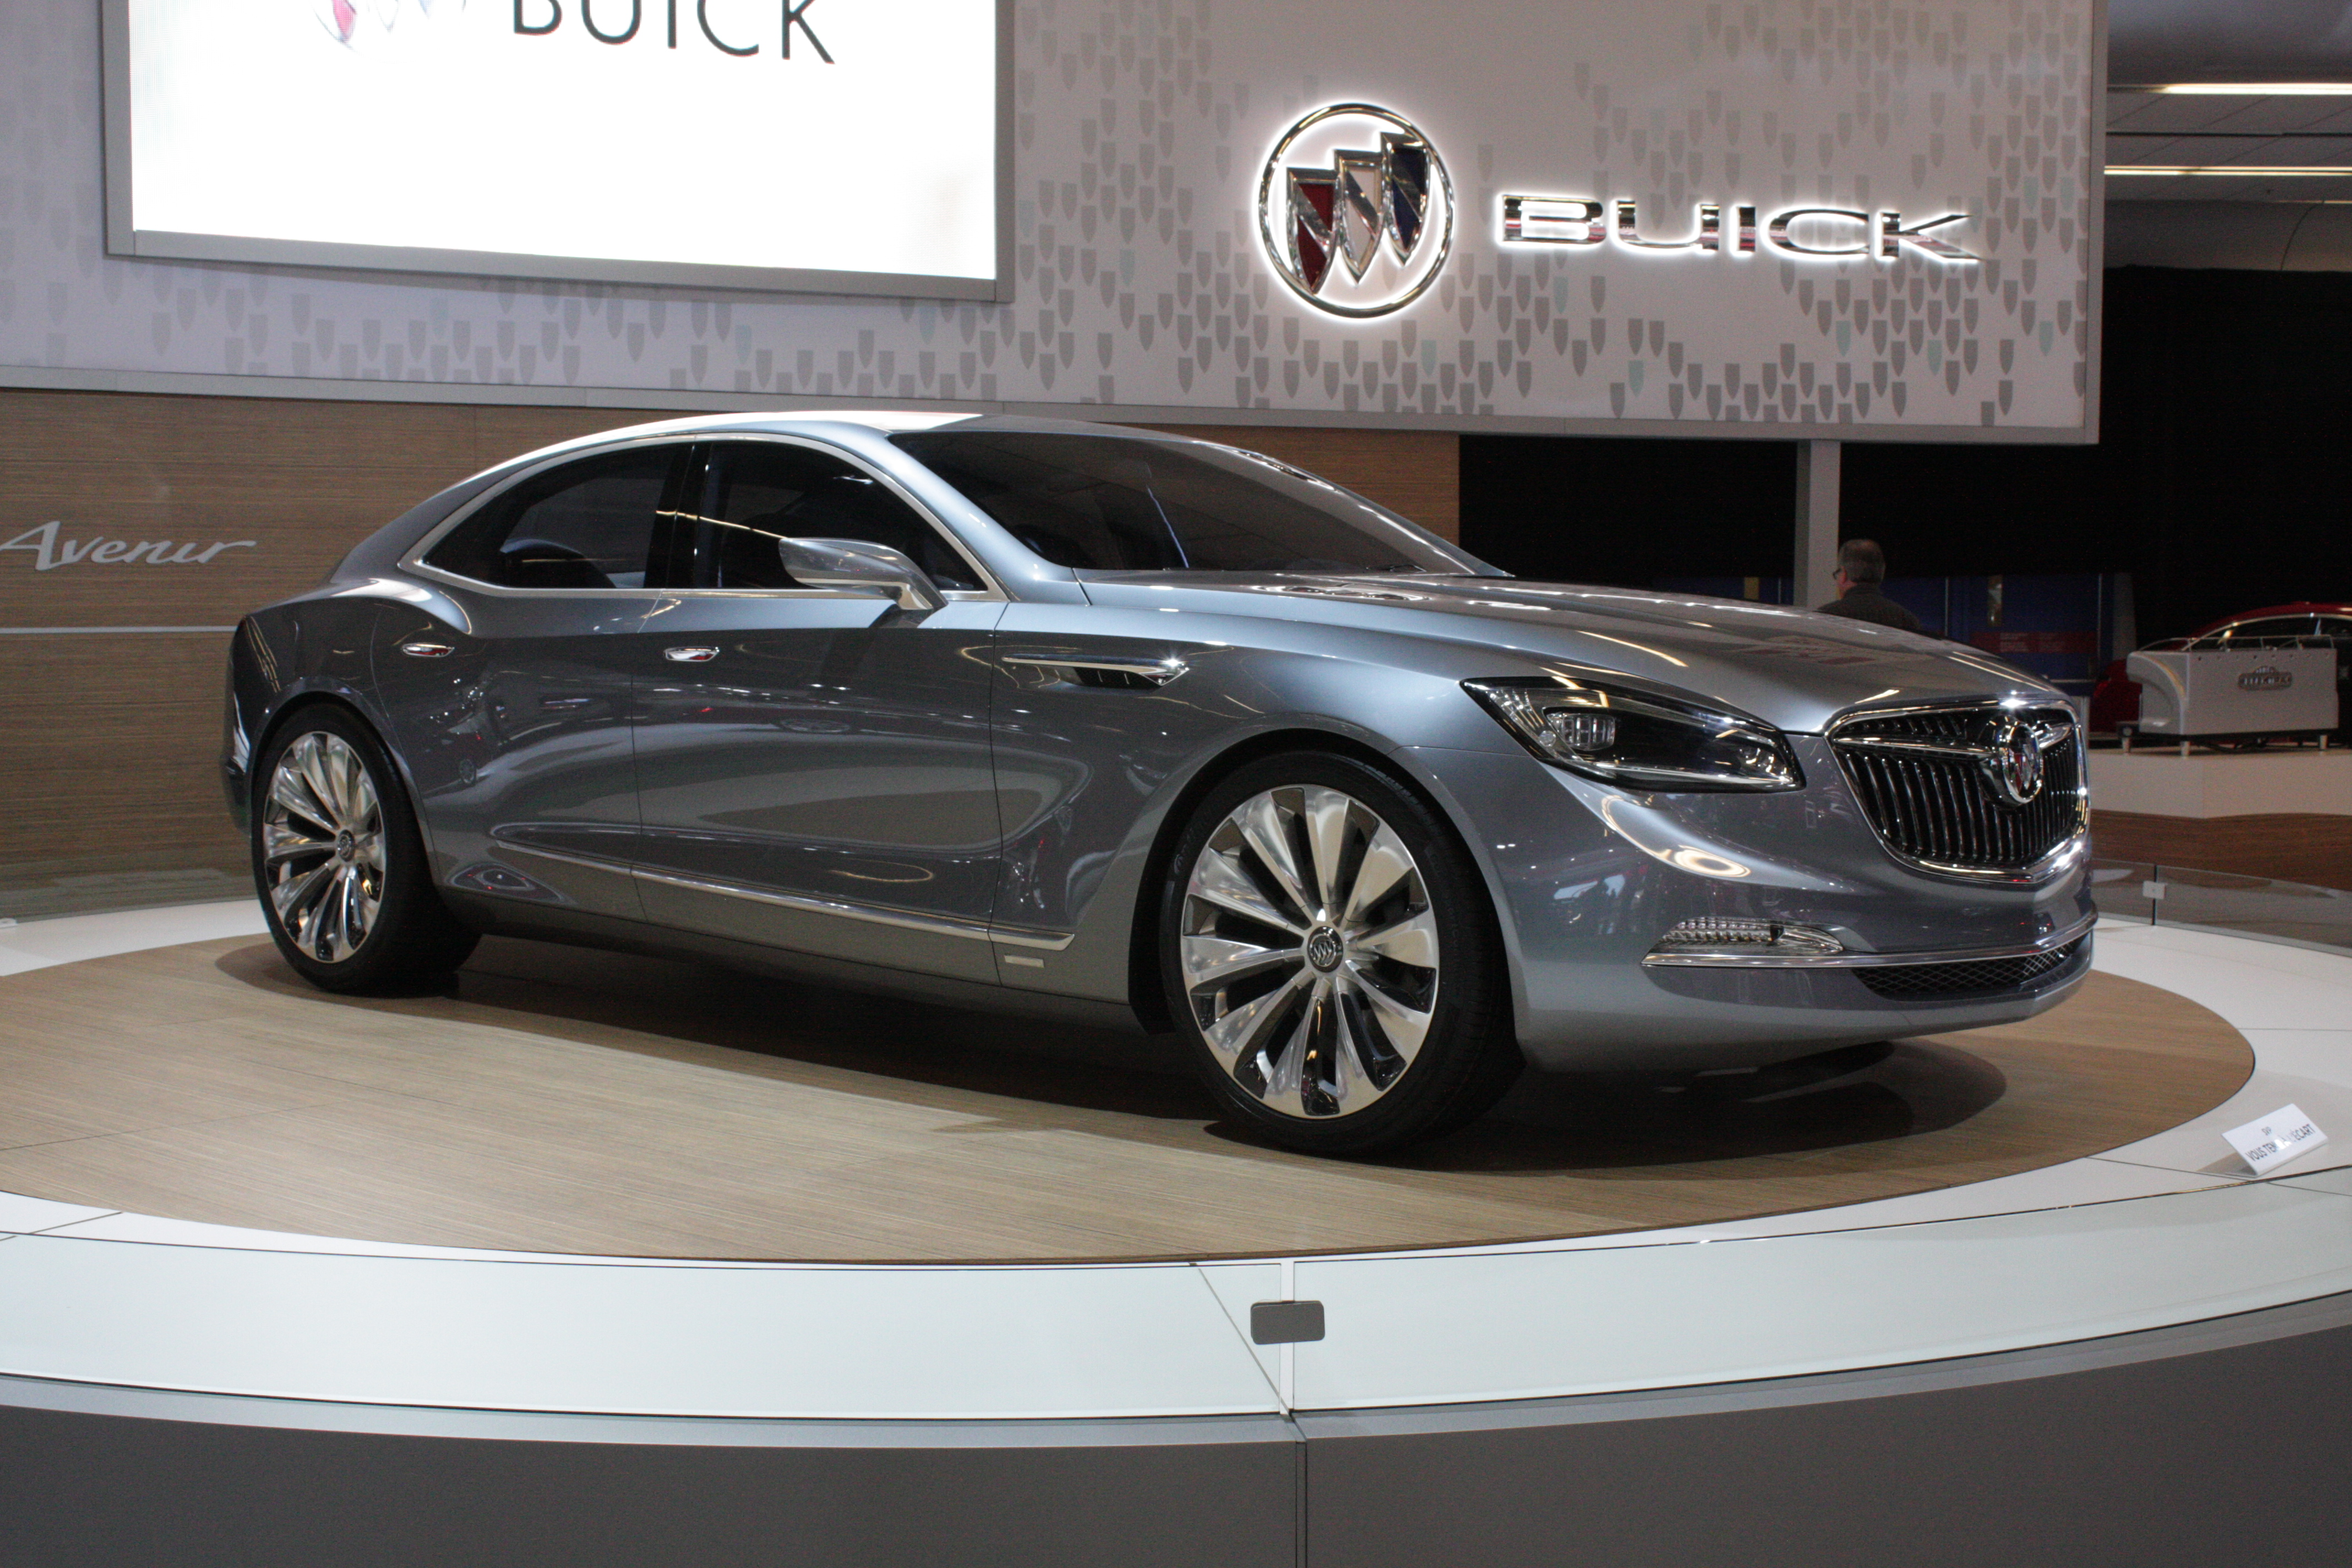 Buick is showing Montrealers its Avenir concept, a gorgeous sedan whose styling informs the forthcoming LaCrosse sedan. We hope it also signals the future addition of a full-size flagship model.